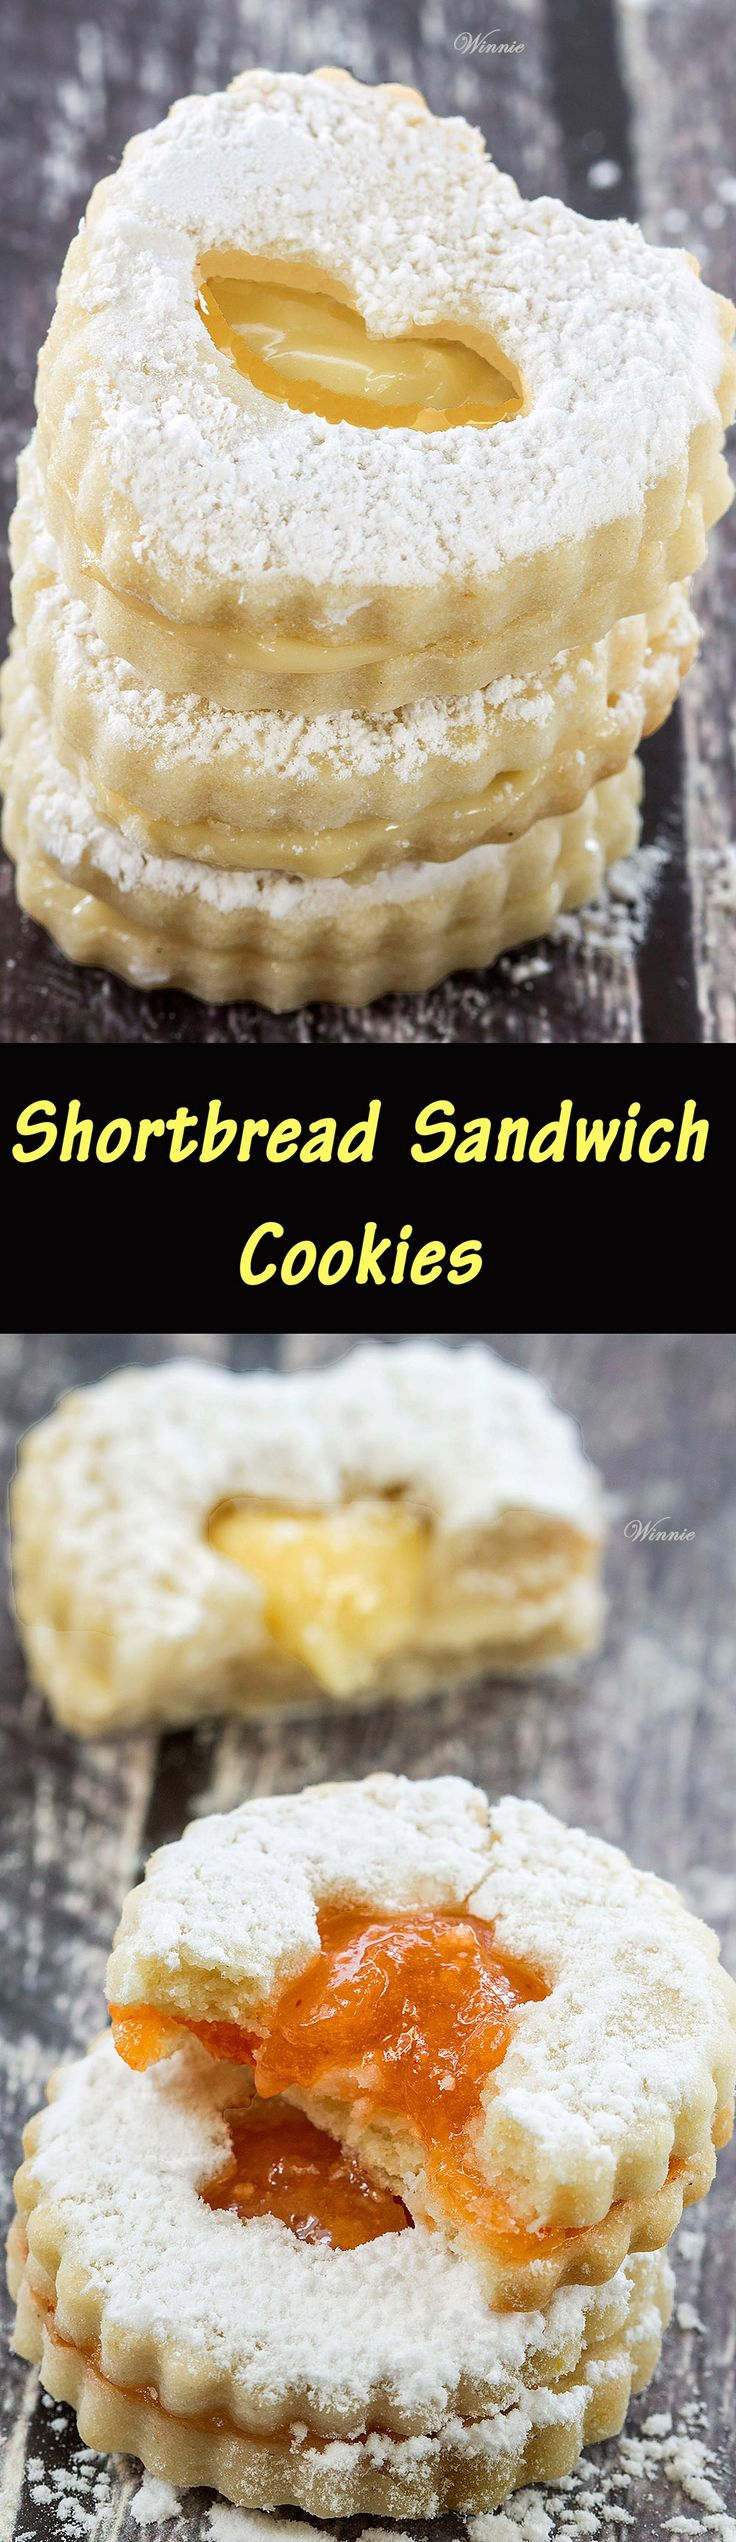 Wonderful and delicious Shortbread Sandwich cookies- made with a special no-egg dough - the best recipe for shortbread cookies ever!  http://www.winnish.net/2015/08/210/